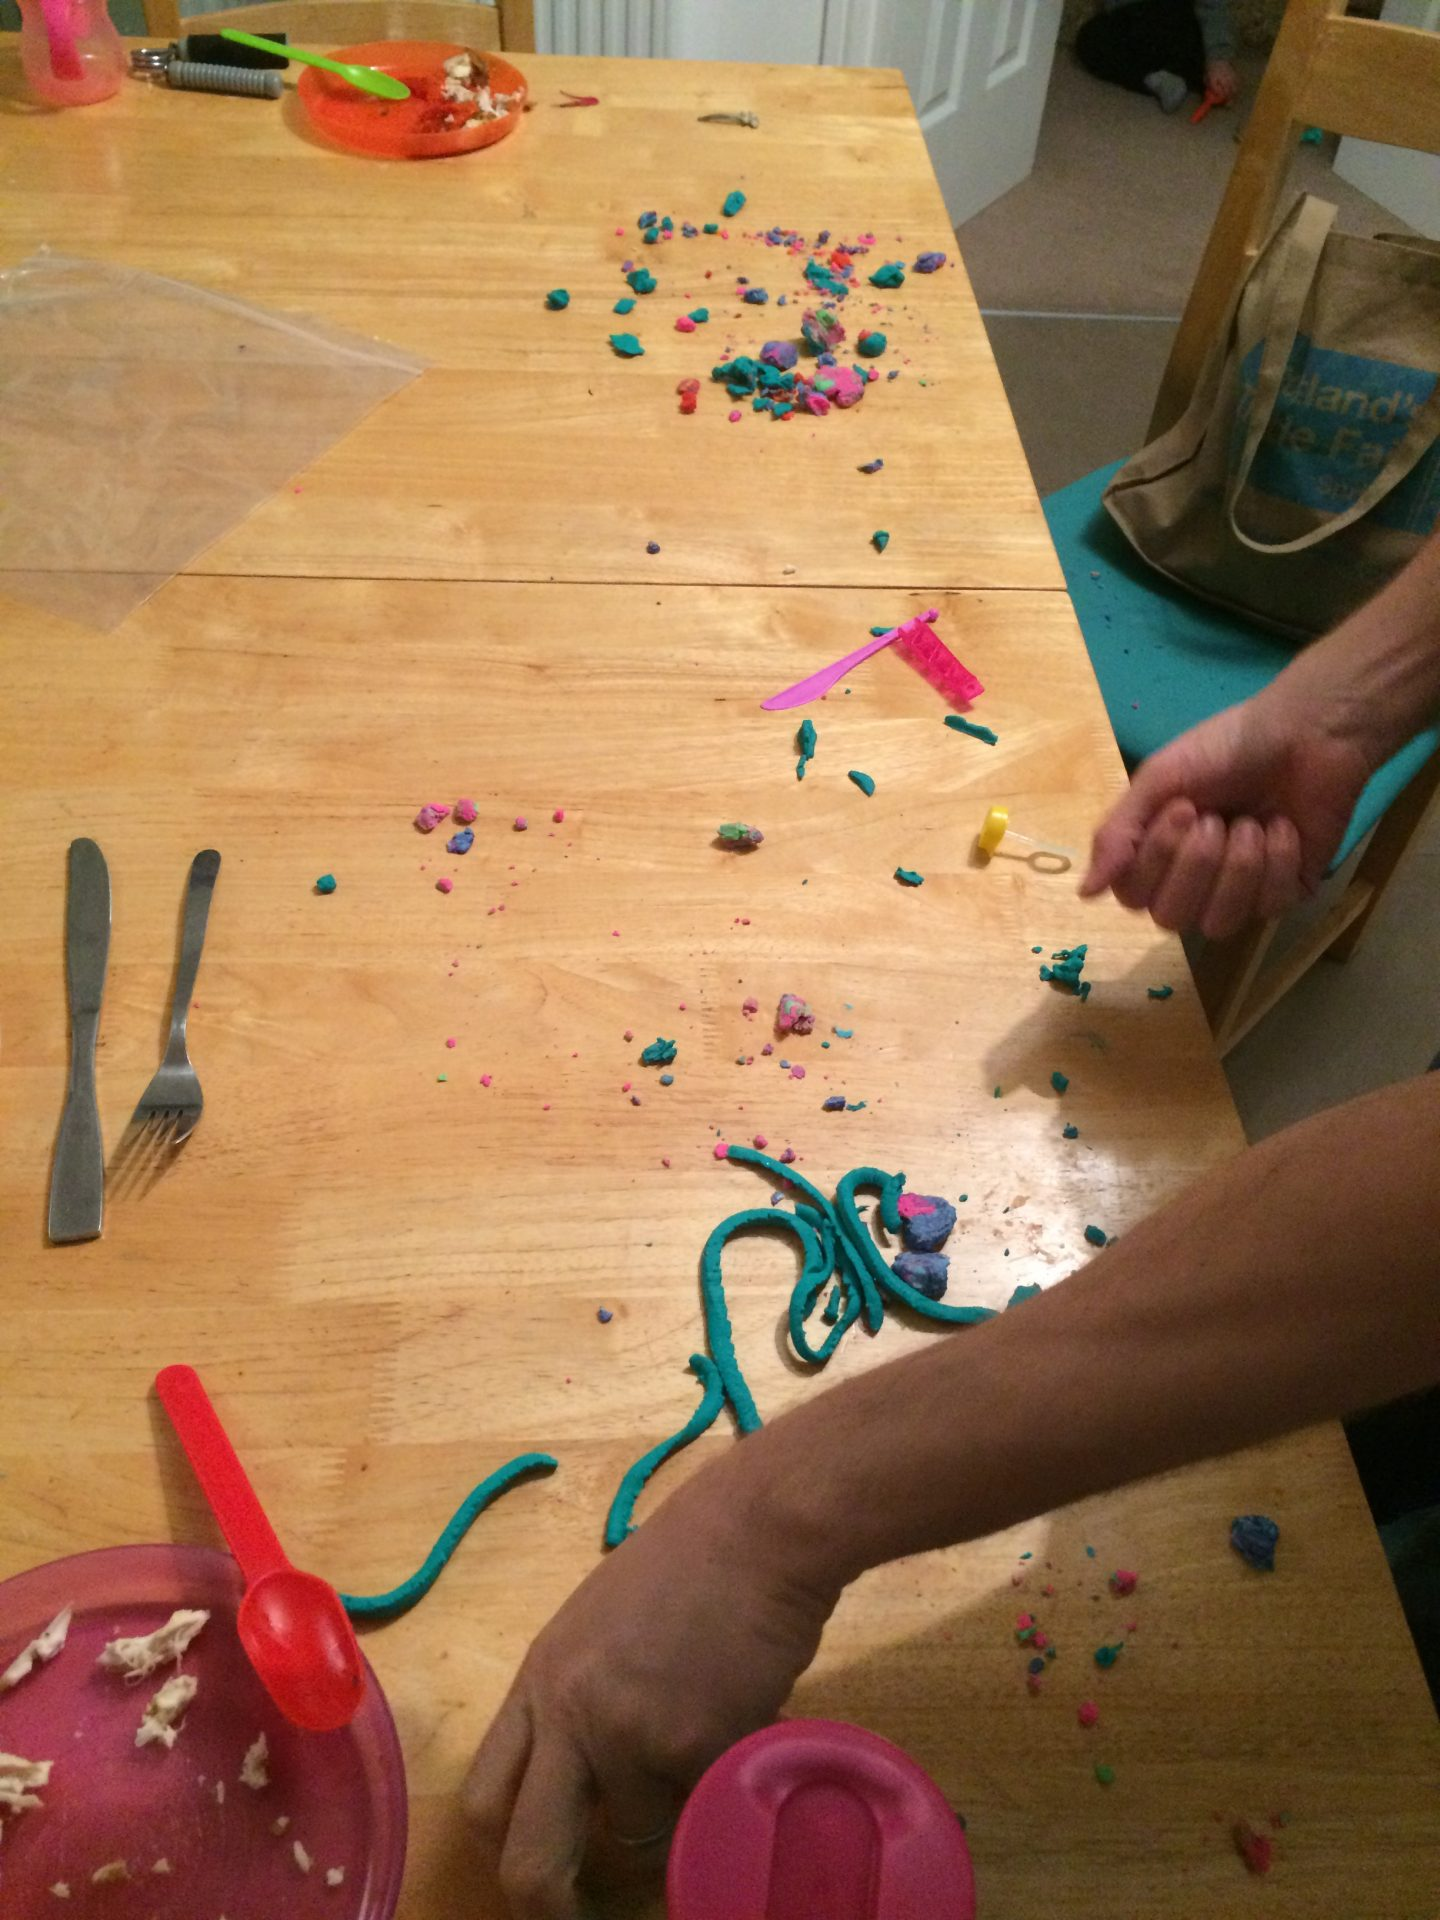 In Defence of being messy